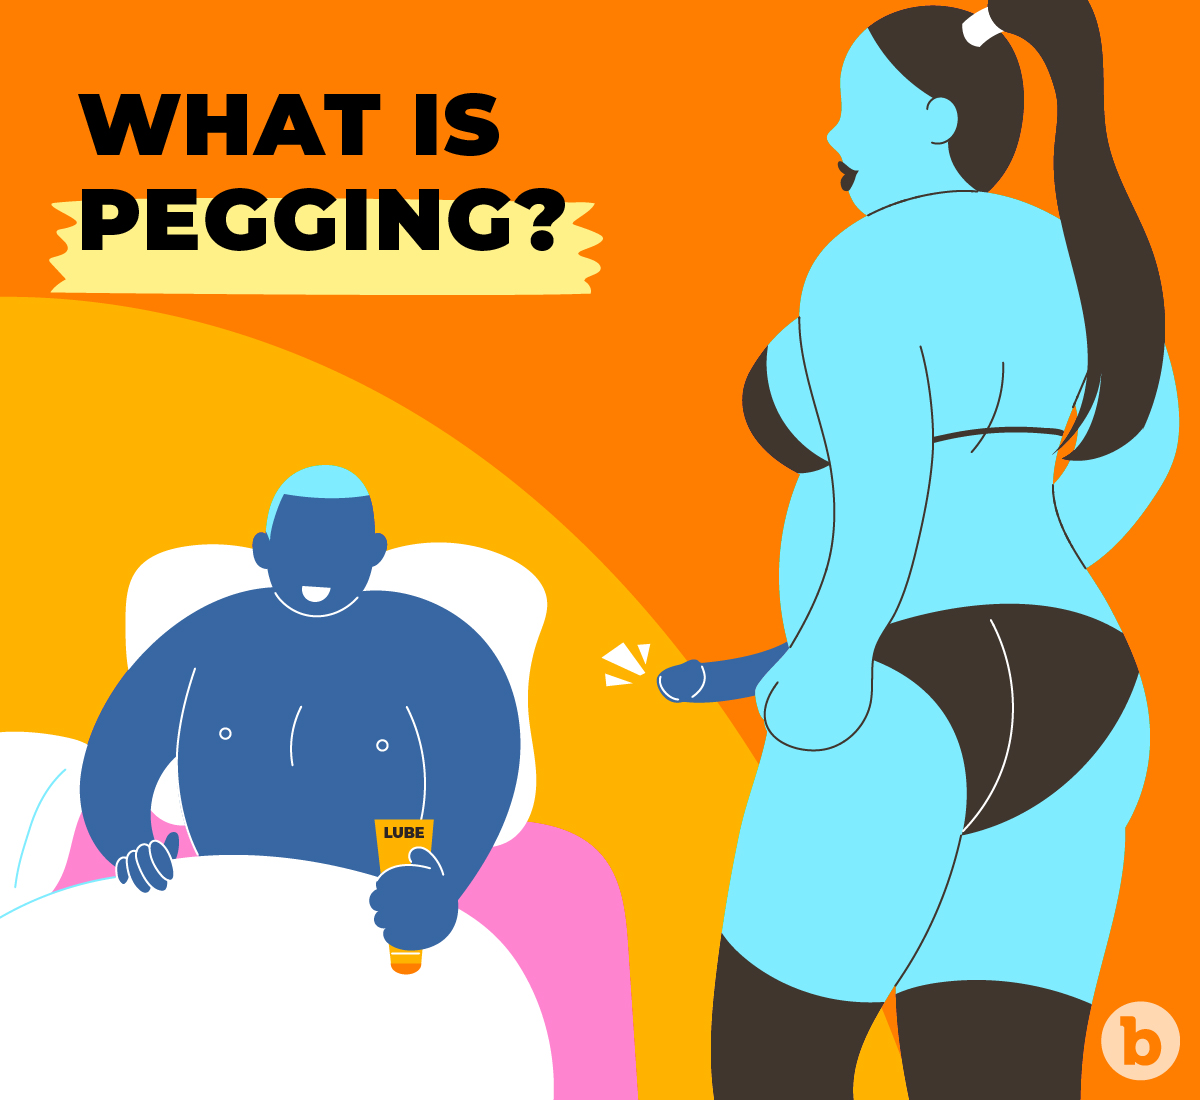 Pegging is the act of anally penetrating someone with a strap-on dildo